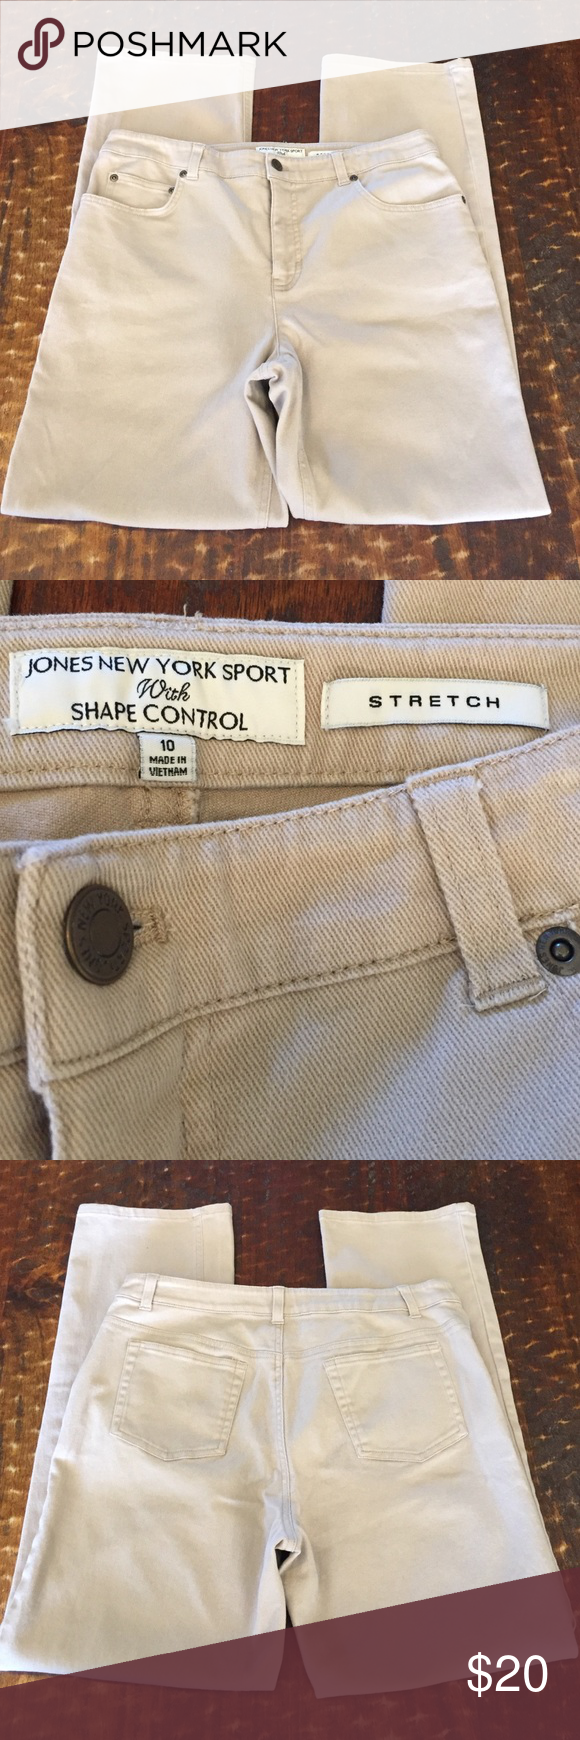 "Jones New York khaki jeans, size 10, 29.5"" inseam Jones New York khaki jeans, size 10, 29.5"" inseam, great condition! Jones New York Jeans Straight Leg"